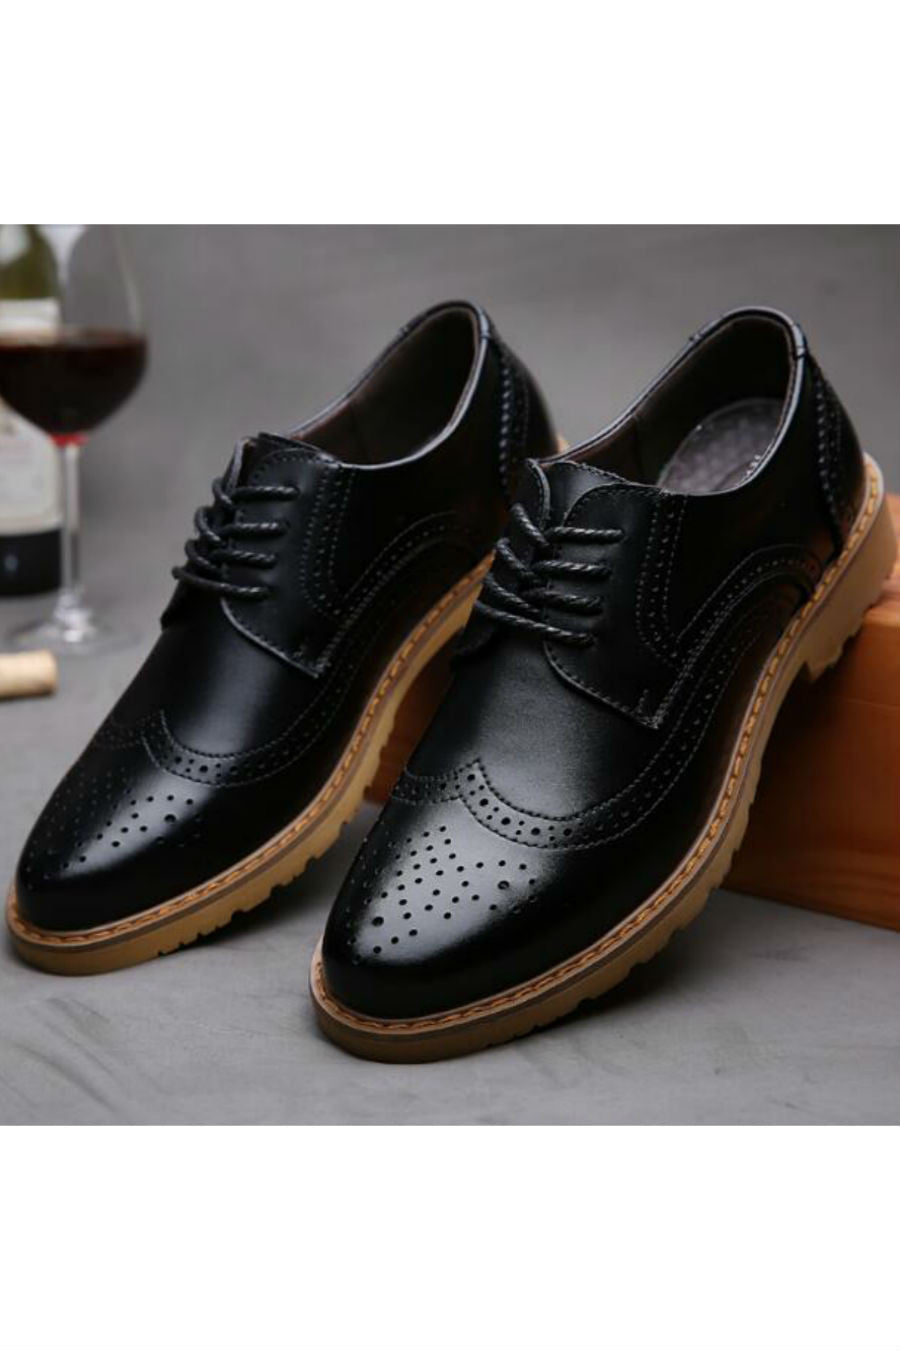 Black Lace Up Brogue Shoes